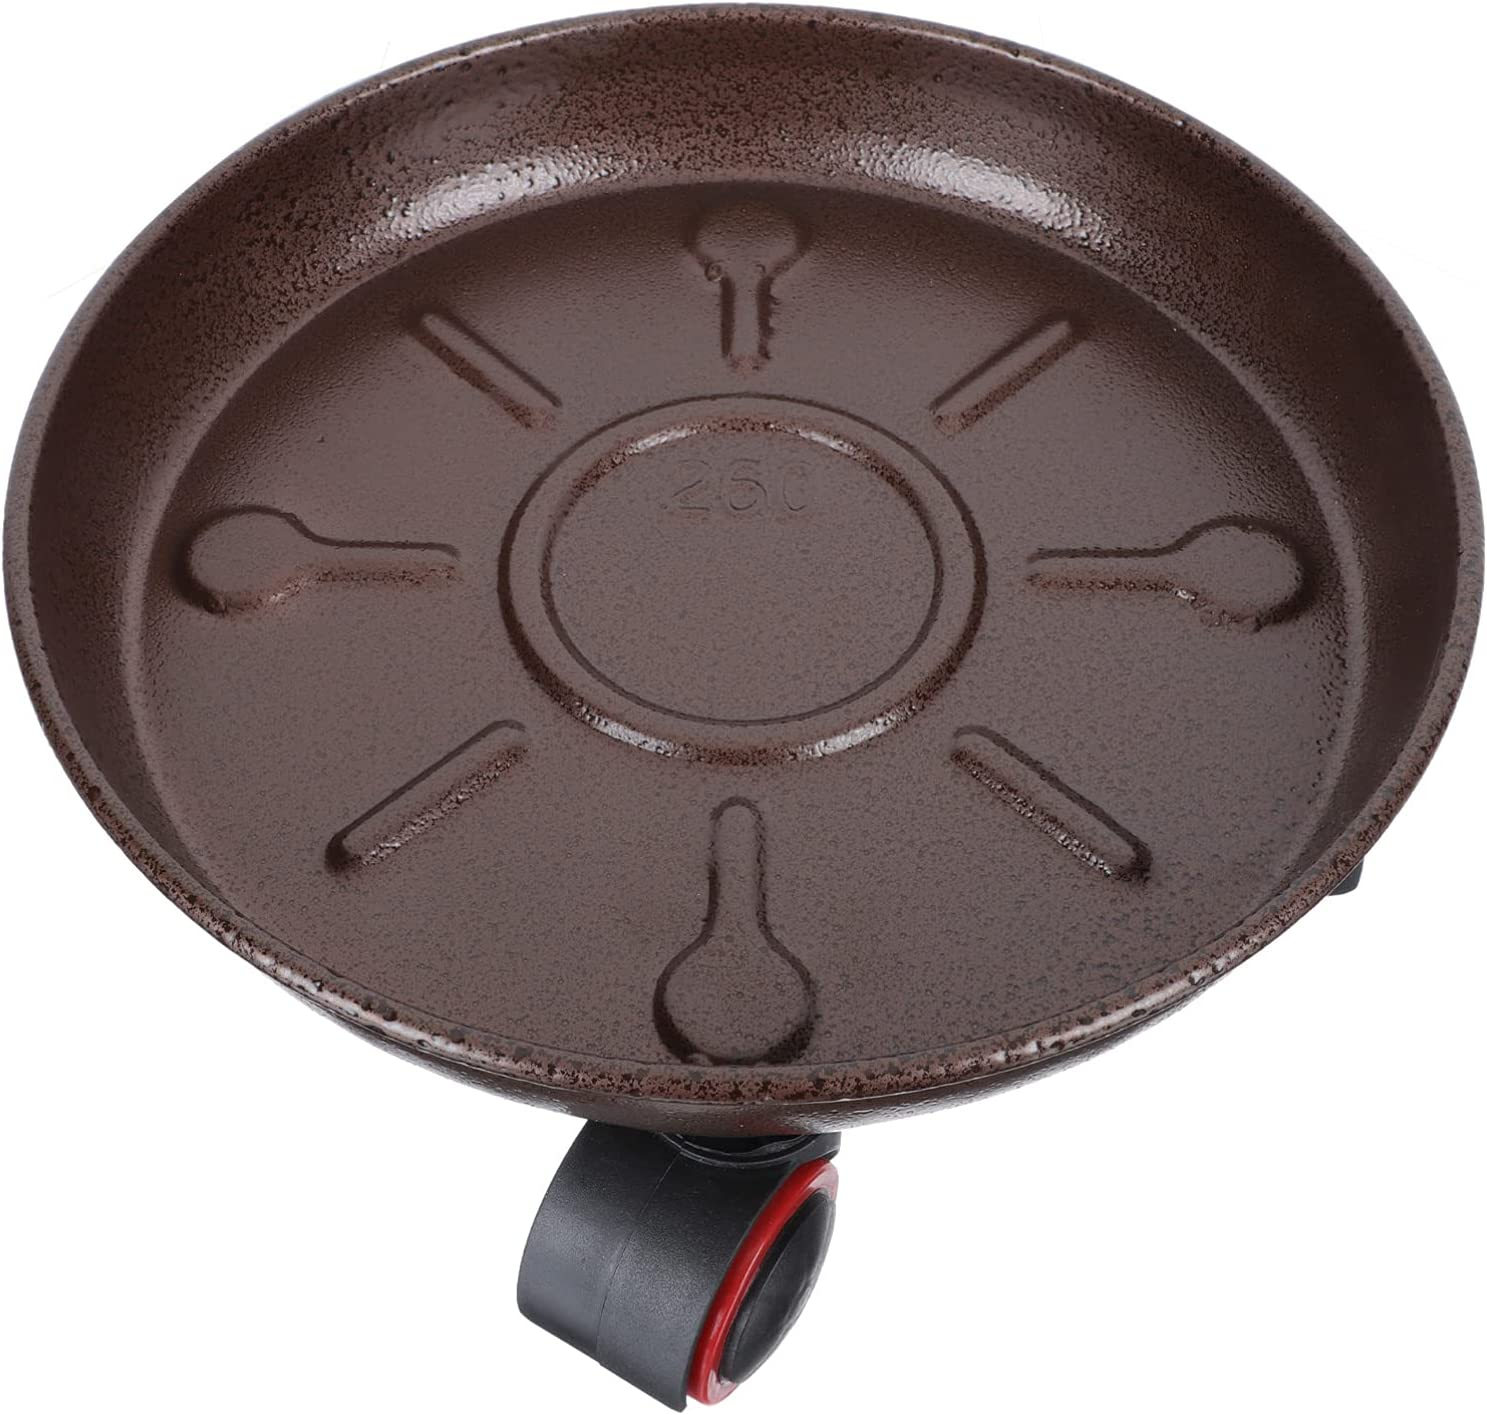 Happyyami Round Flower Pot Selling and selling Tray 2021 spring and summer new Metal Heavy Plant Iro Duty Caddy